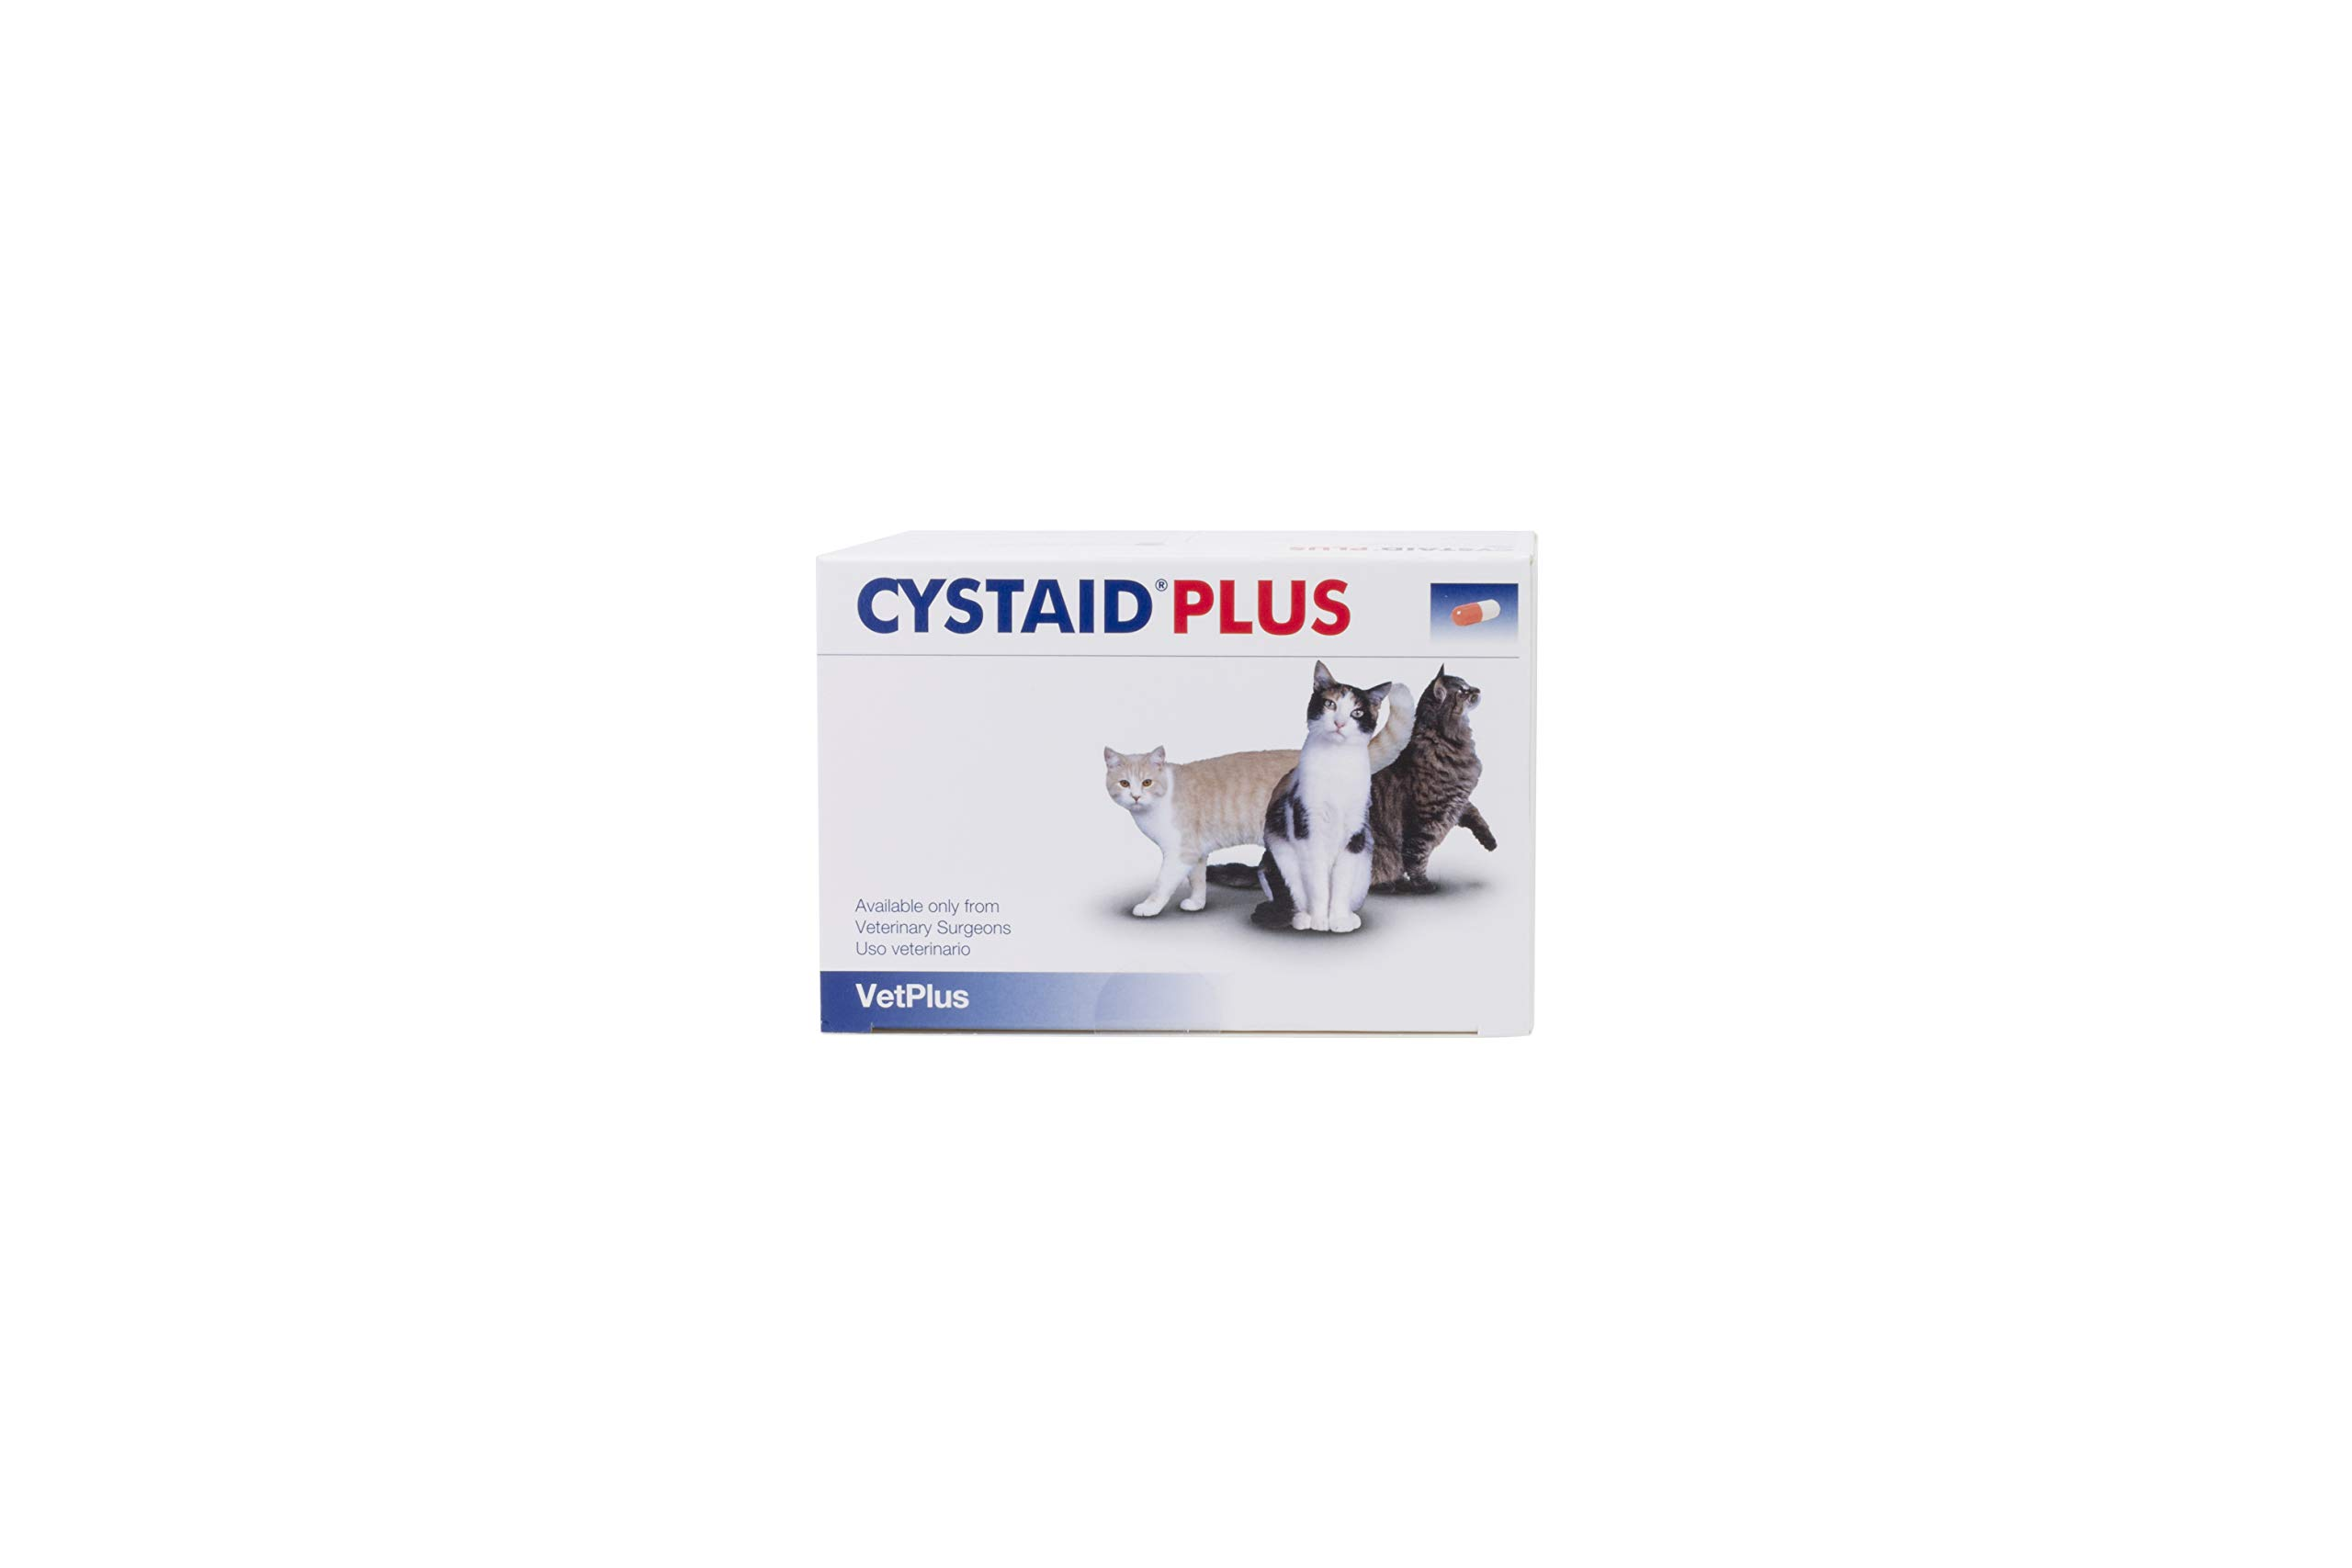 Cystaid Plus 240no. sprinkle capsules